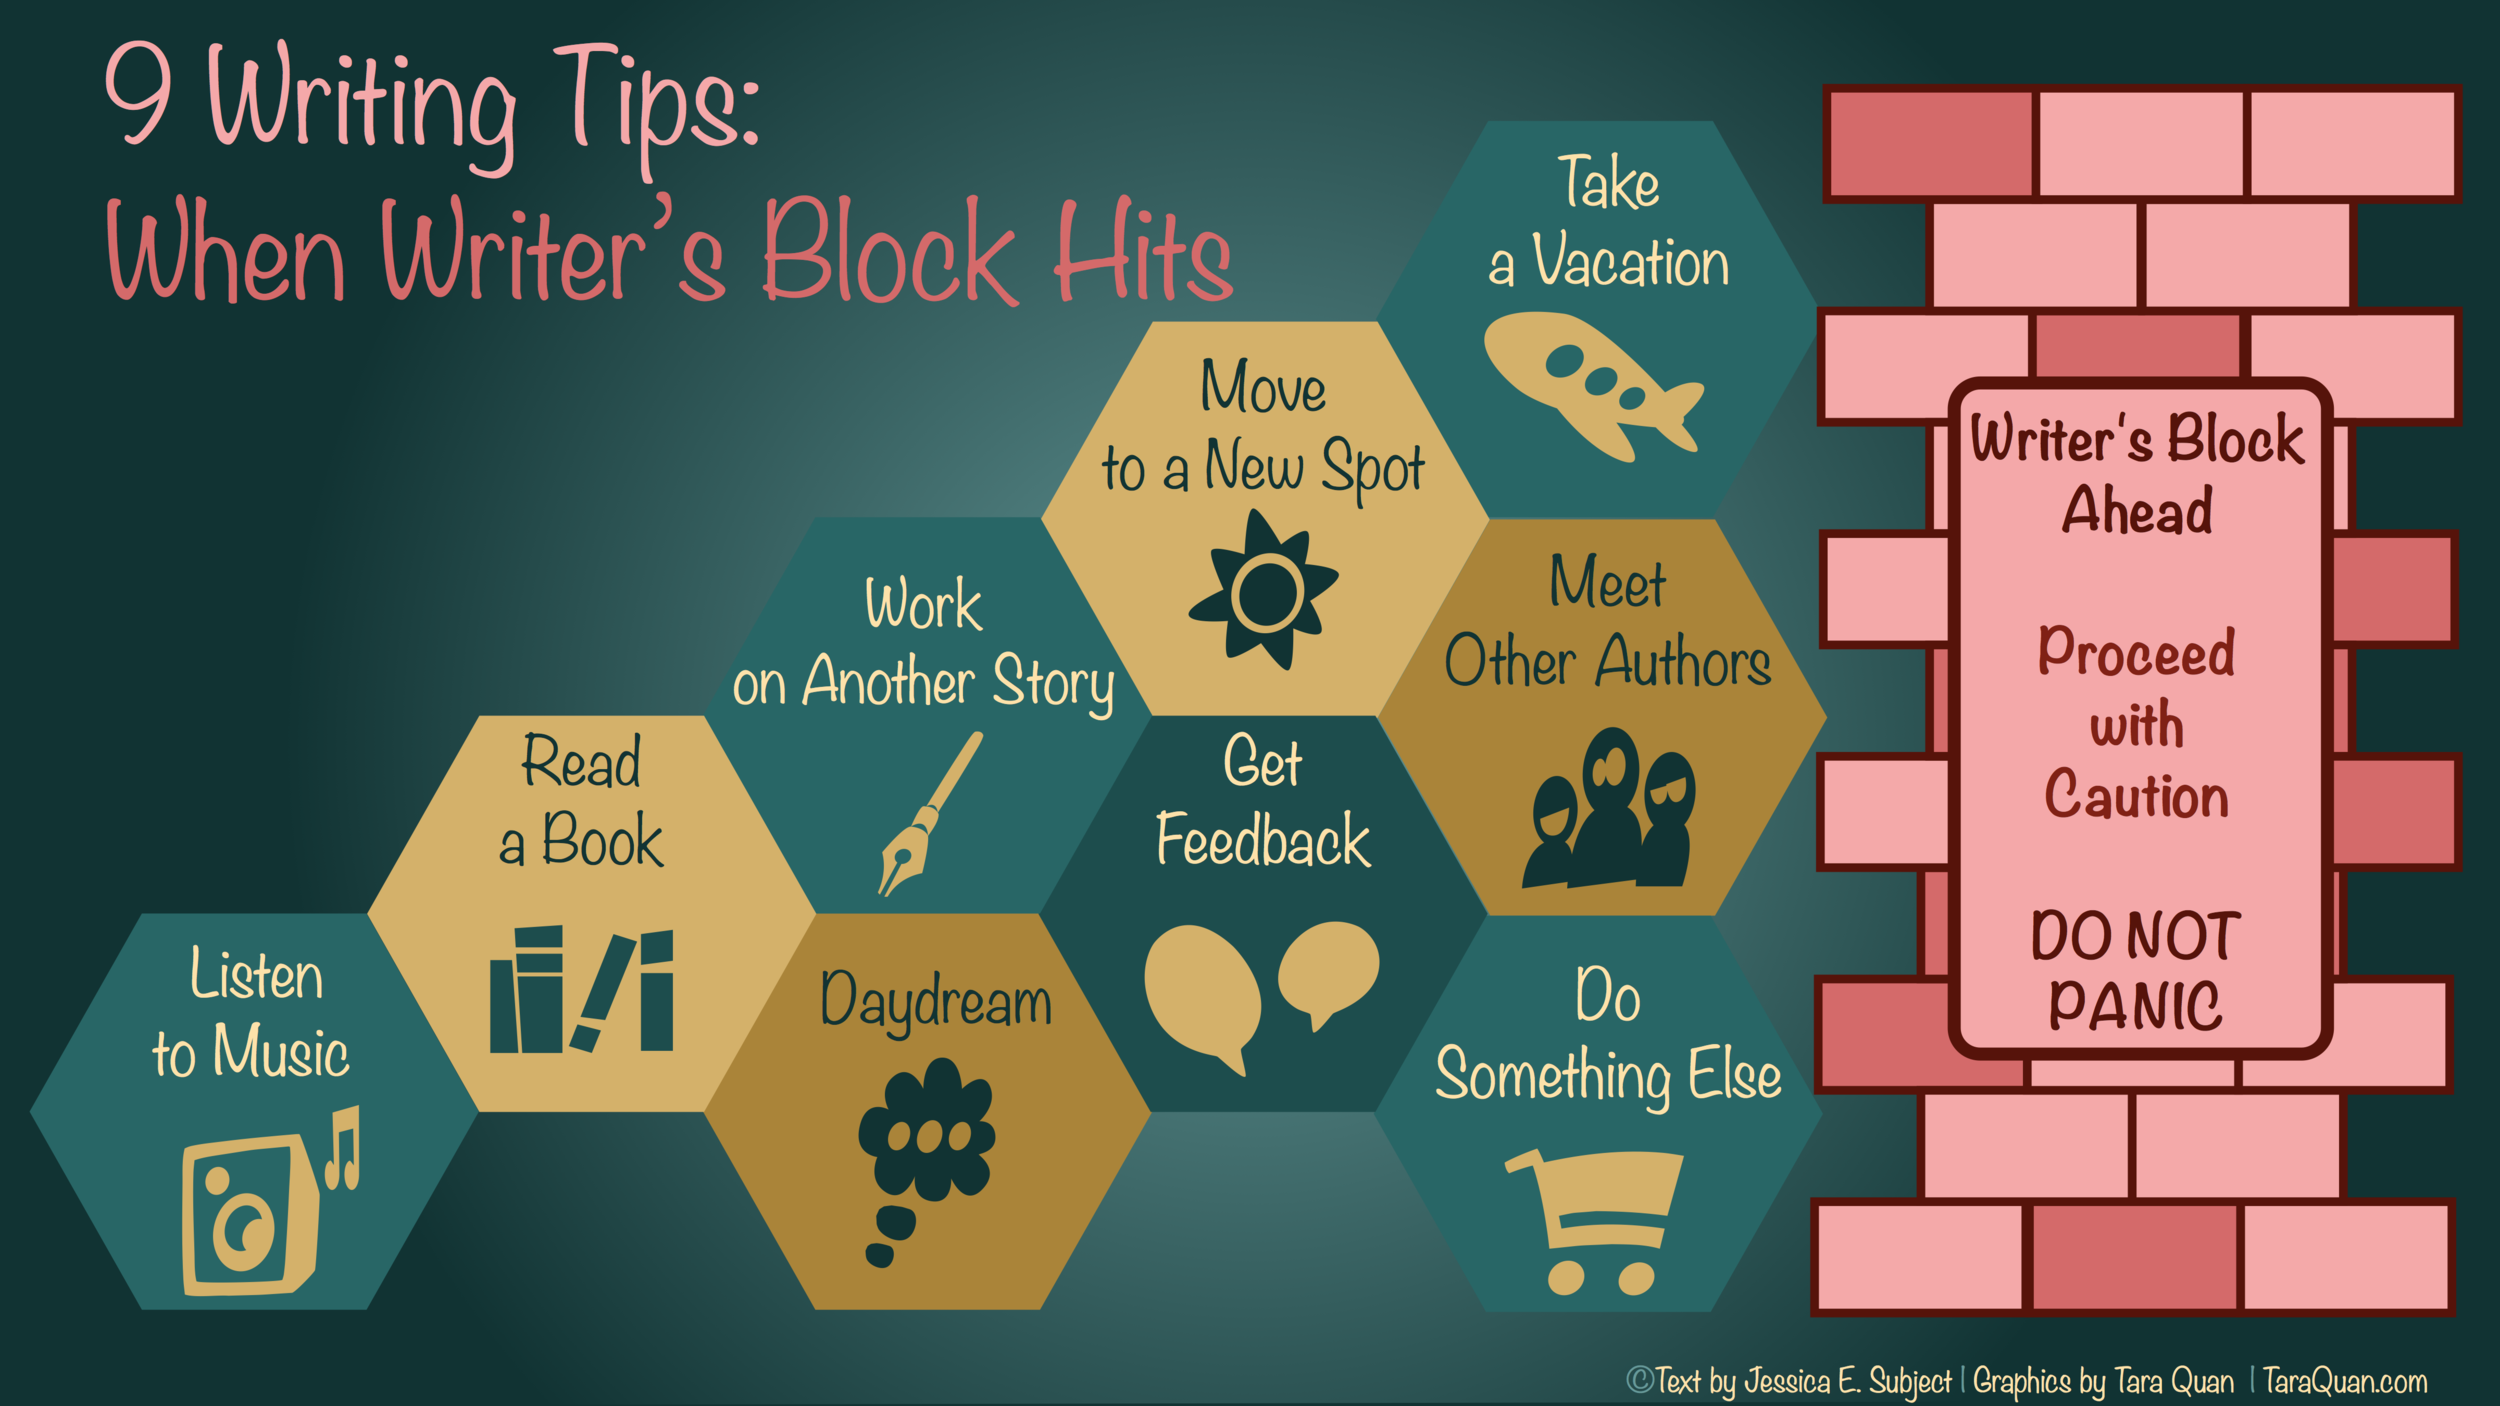 9 Writing Tips: When Writer's Block Hits | Text by Jessica Subject | Graphics by Tara Quan